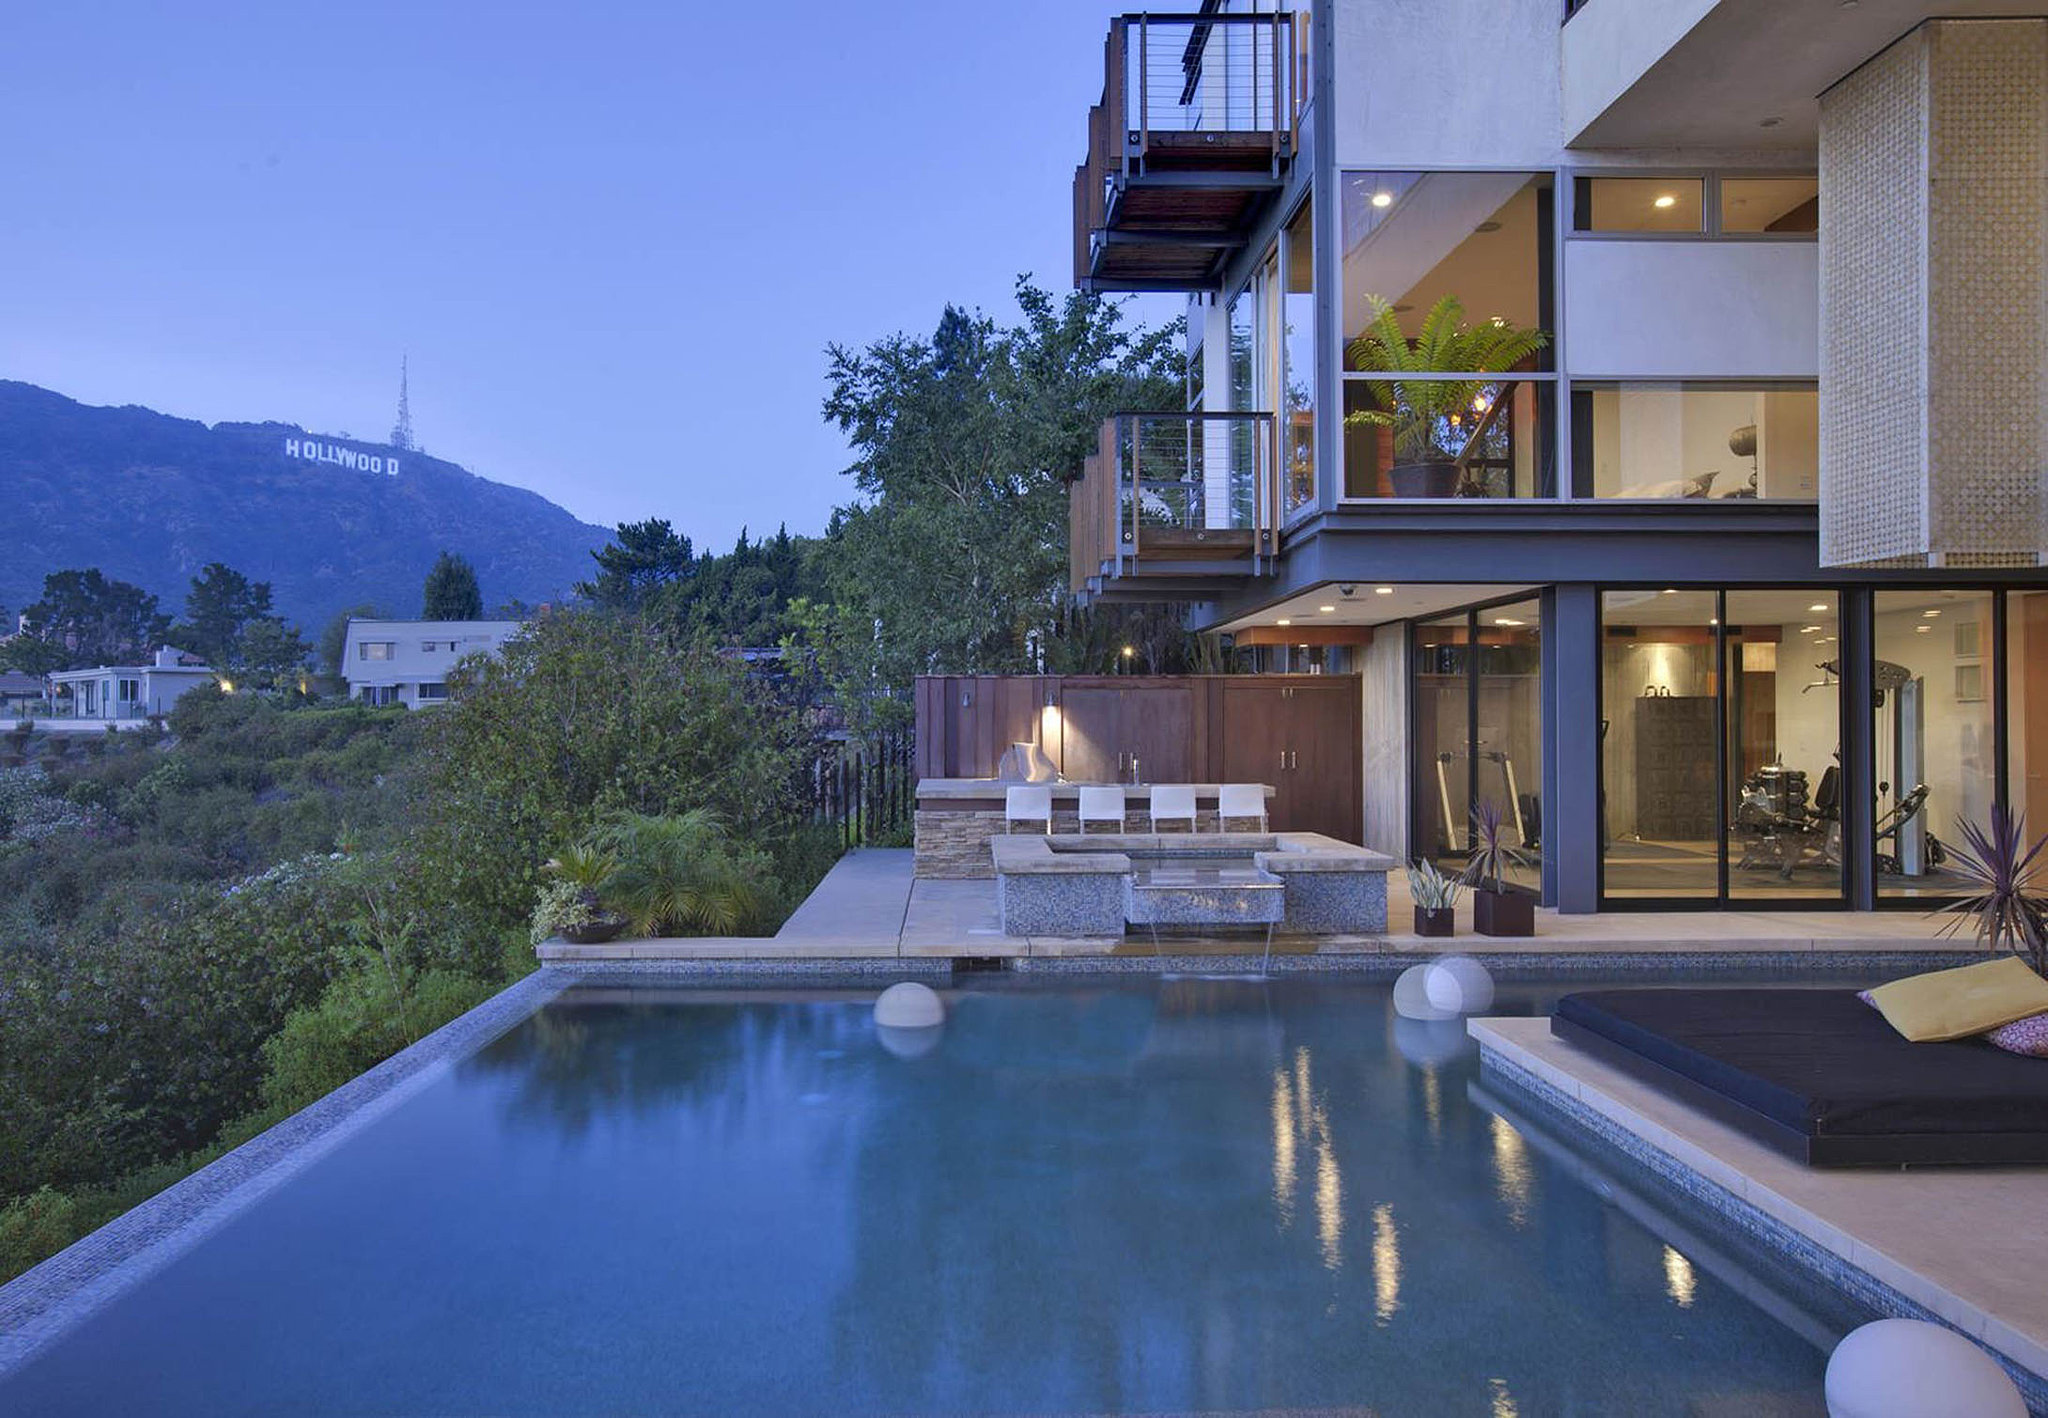 Another look at the infinity pool and the home's several balconies.  Source: Realtor.com